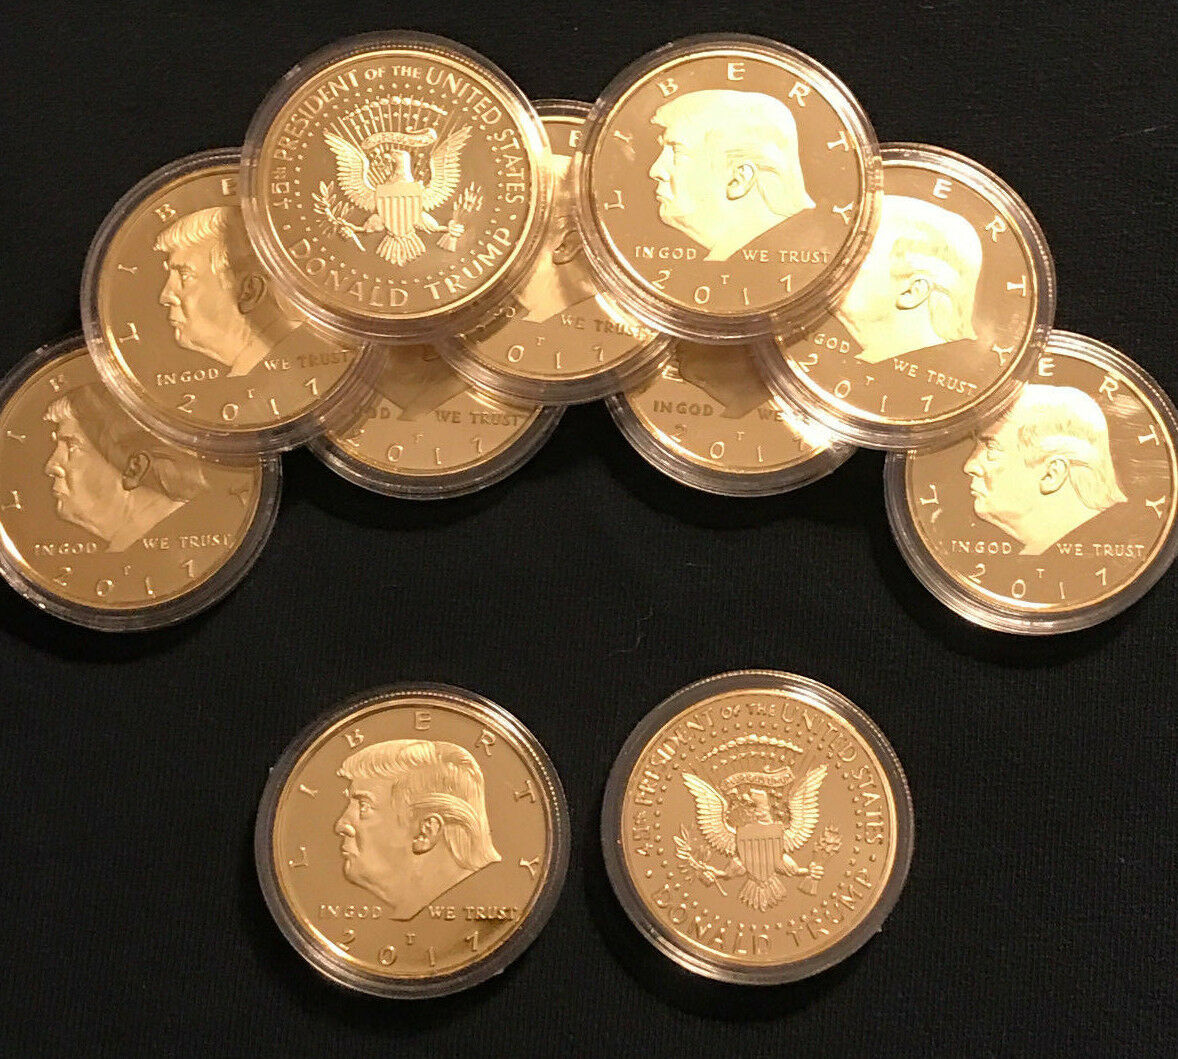 🔥 2018 President Donald Trump 24k Gold Plated EAGLE Commemorative Coin 🔥